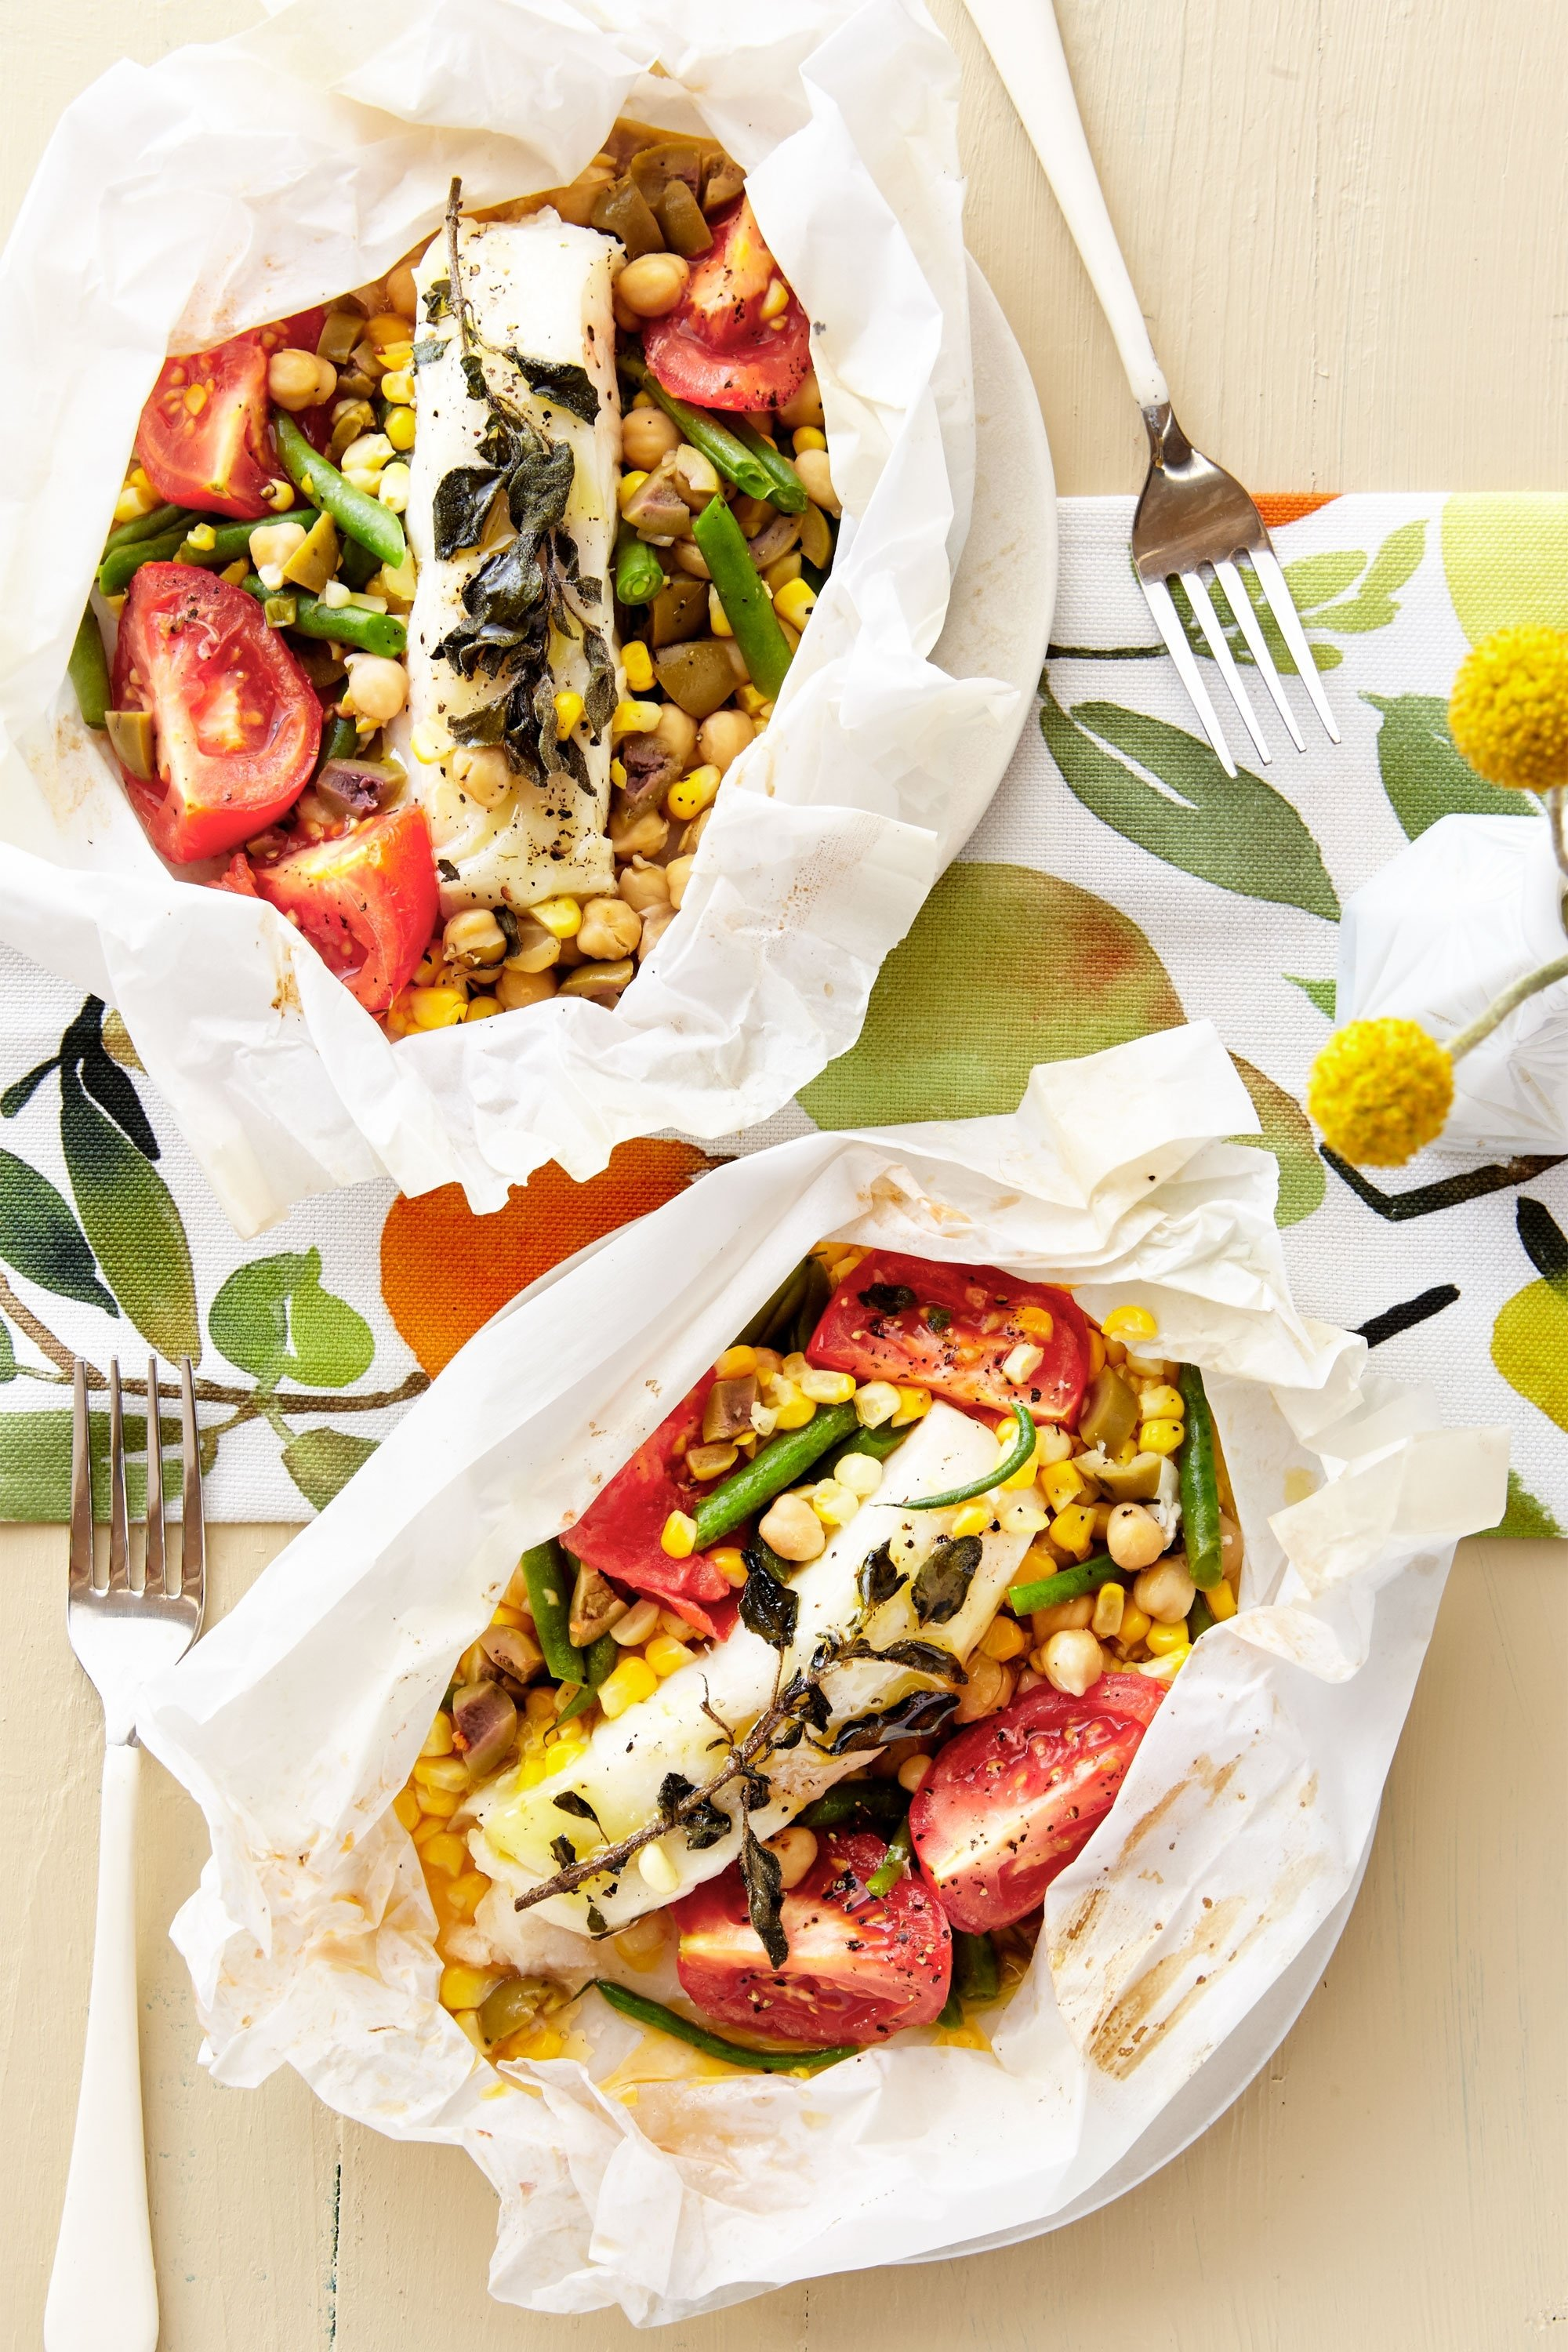 10 ideal easy and fast dinner ideas 10 ideal easy and fast dinner ideas download easy and fast dinner recipes food photos forumfinder Choice Image